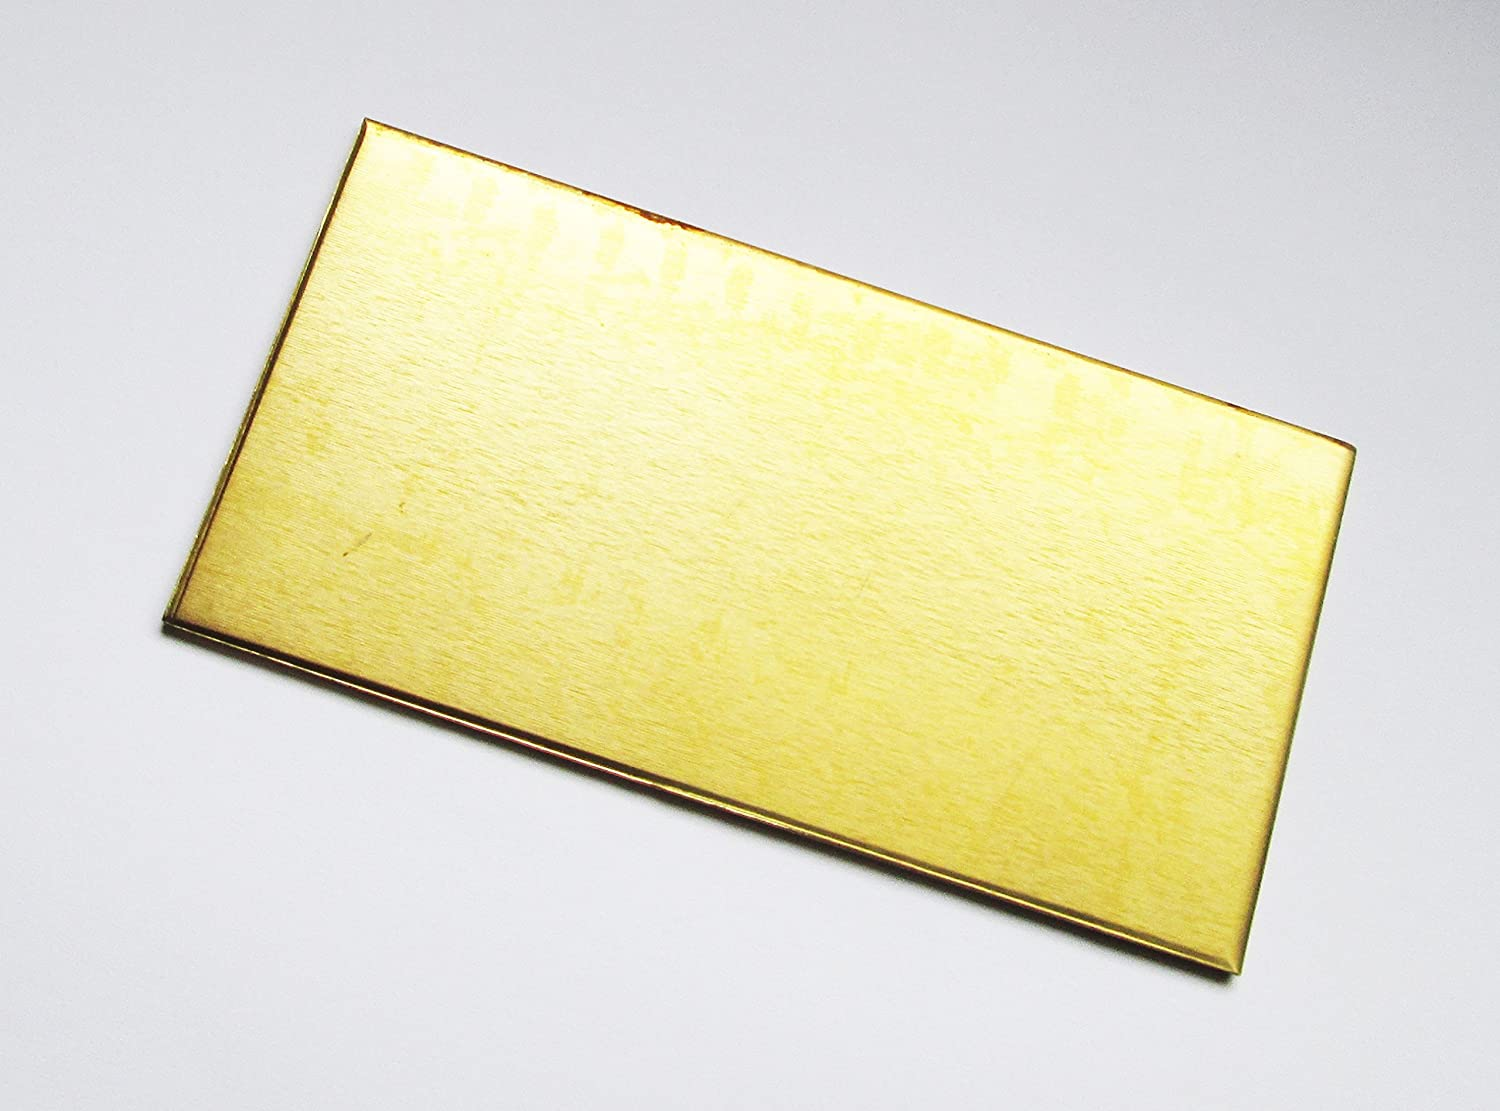 Prime Quality Brass Sheet 0.5mm x 300mm x 210mm tmmetalworks